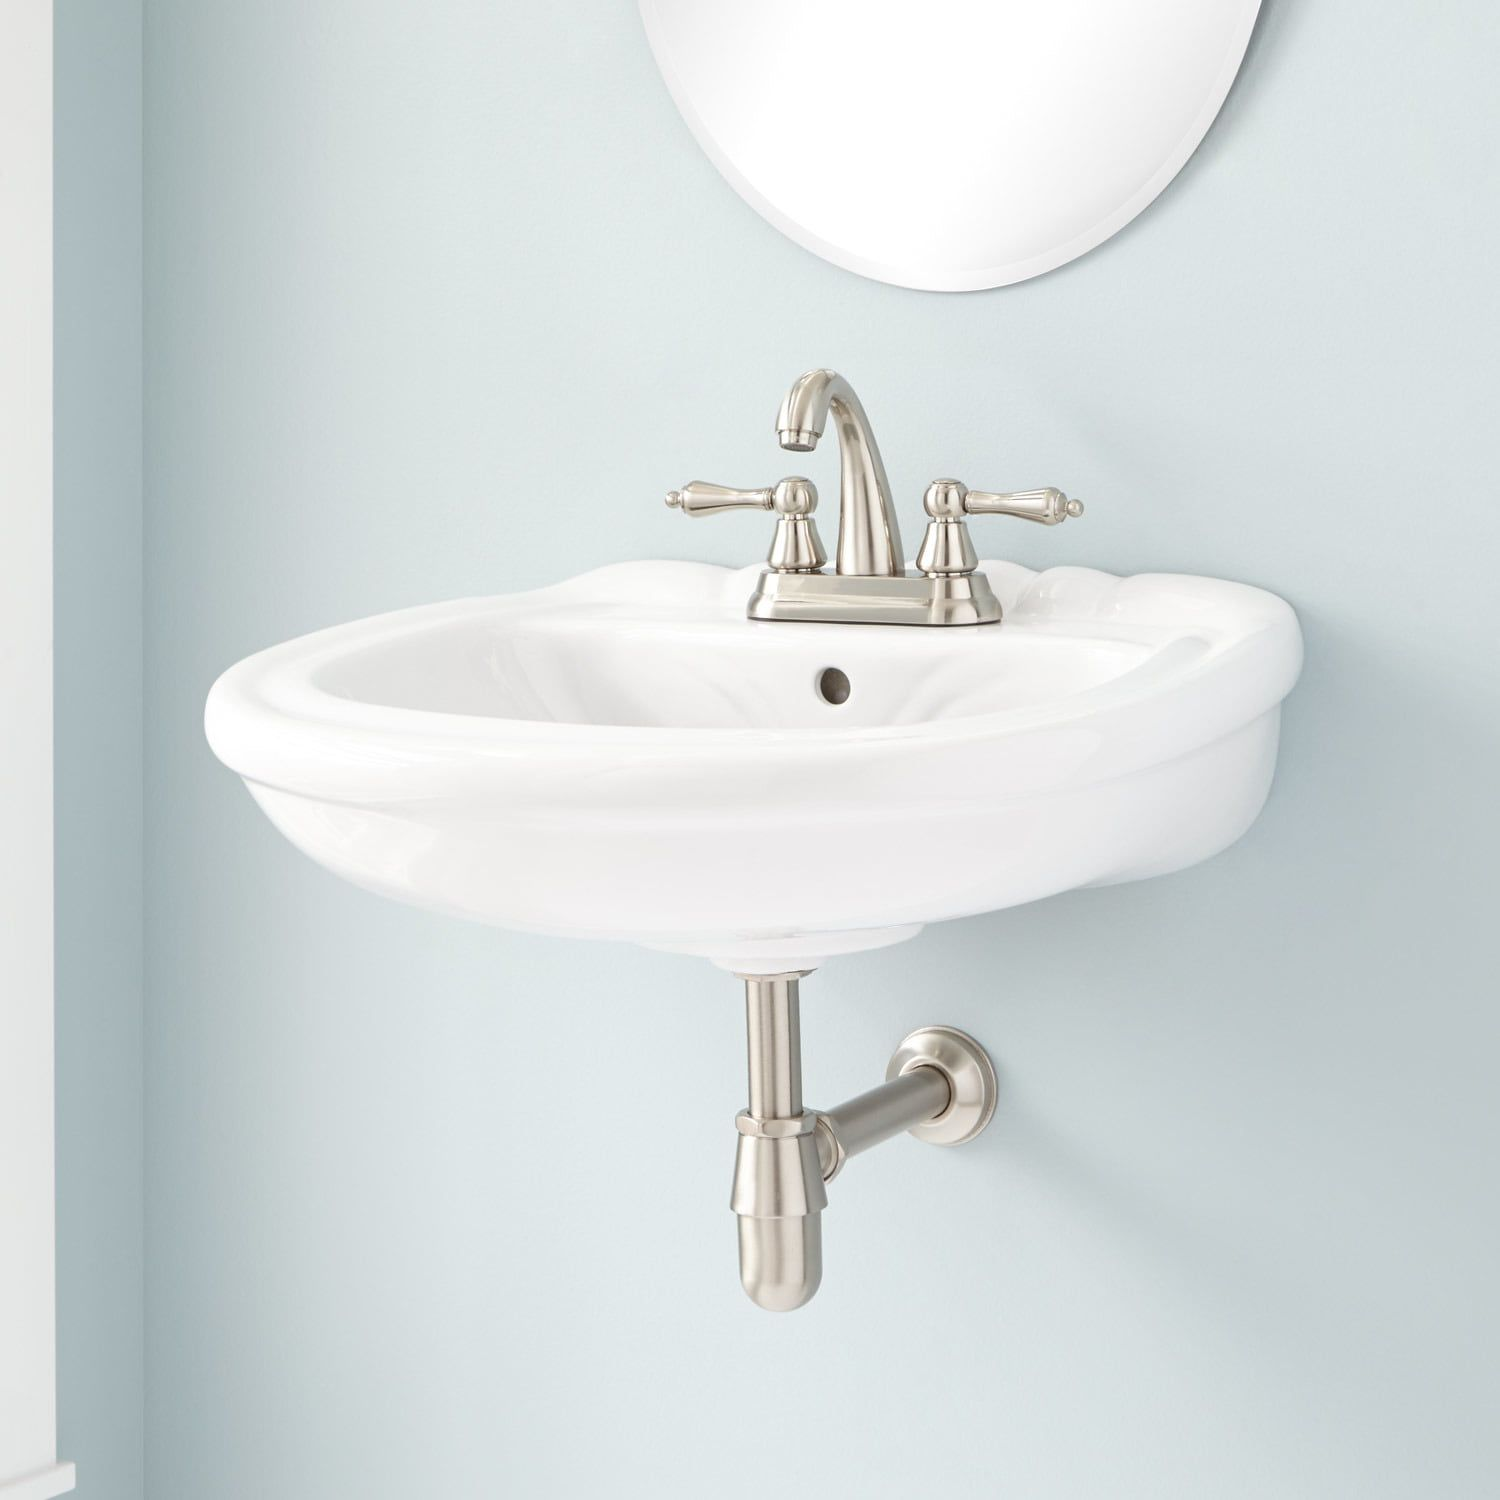 The Nantiby Wall Mount Sink Combines Modern Design With Classic Style Victorian Flairs Such As Curved Markin Wall Mount Sink Sink Wall Mounted Bathroom Sinks [ 1500 x 1500 Pixel ]